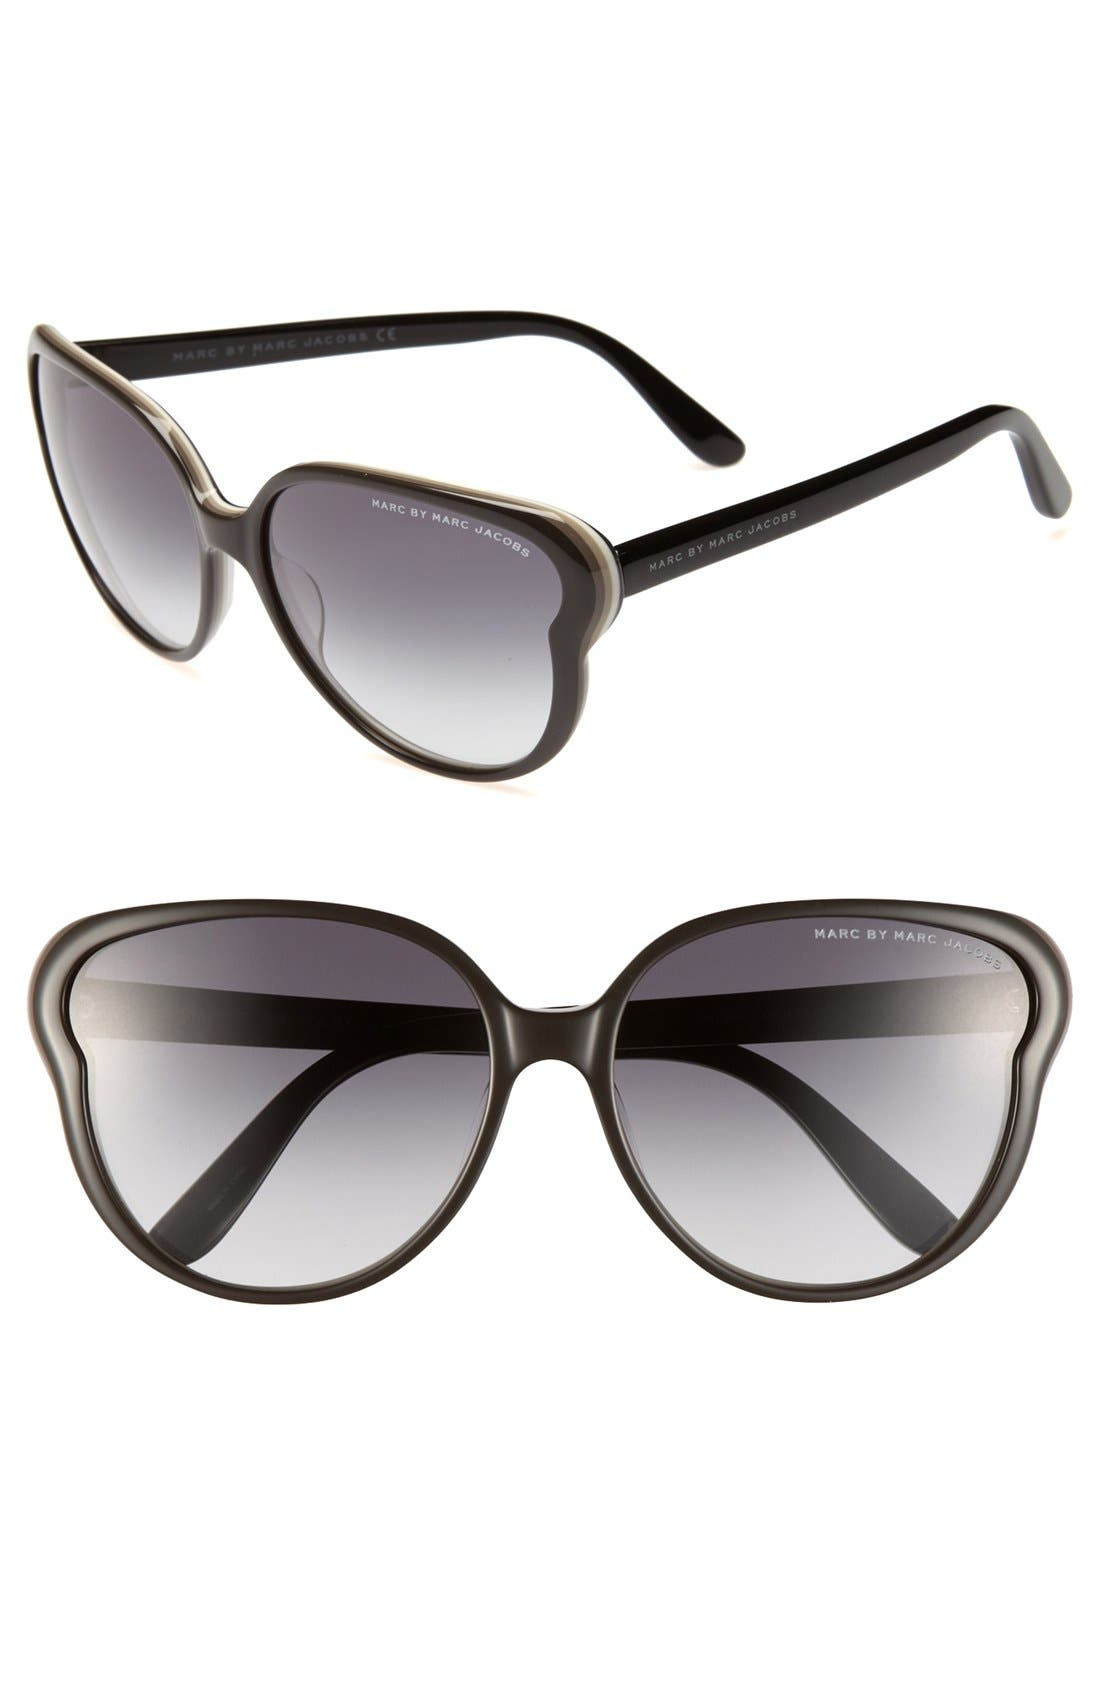 Main Image - MARC BY MARC JACOBS 59mm Butterfly Sunglasses